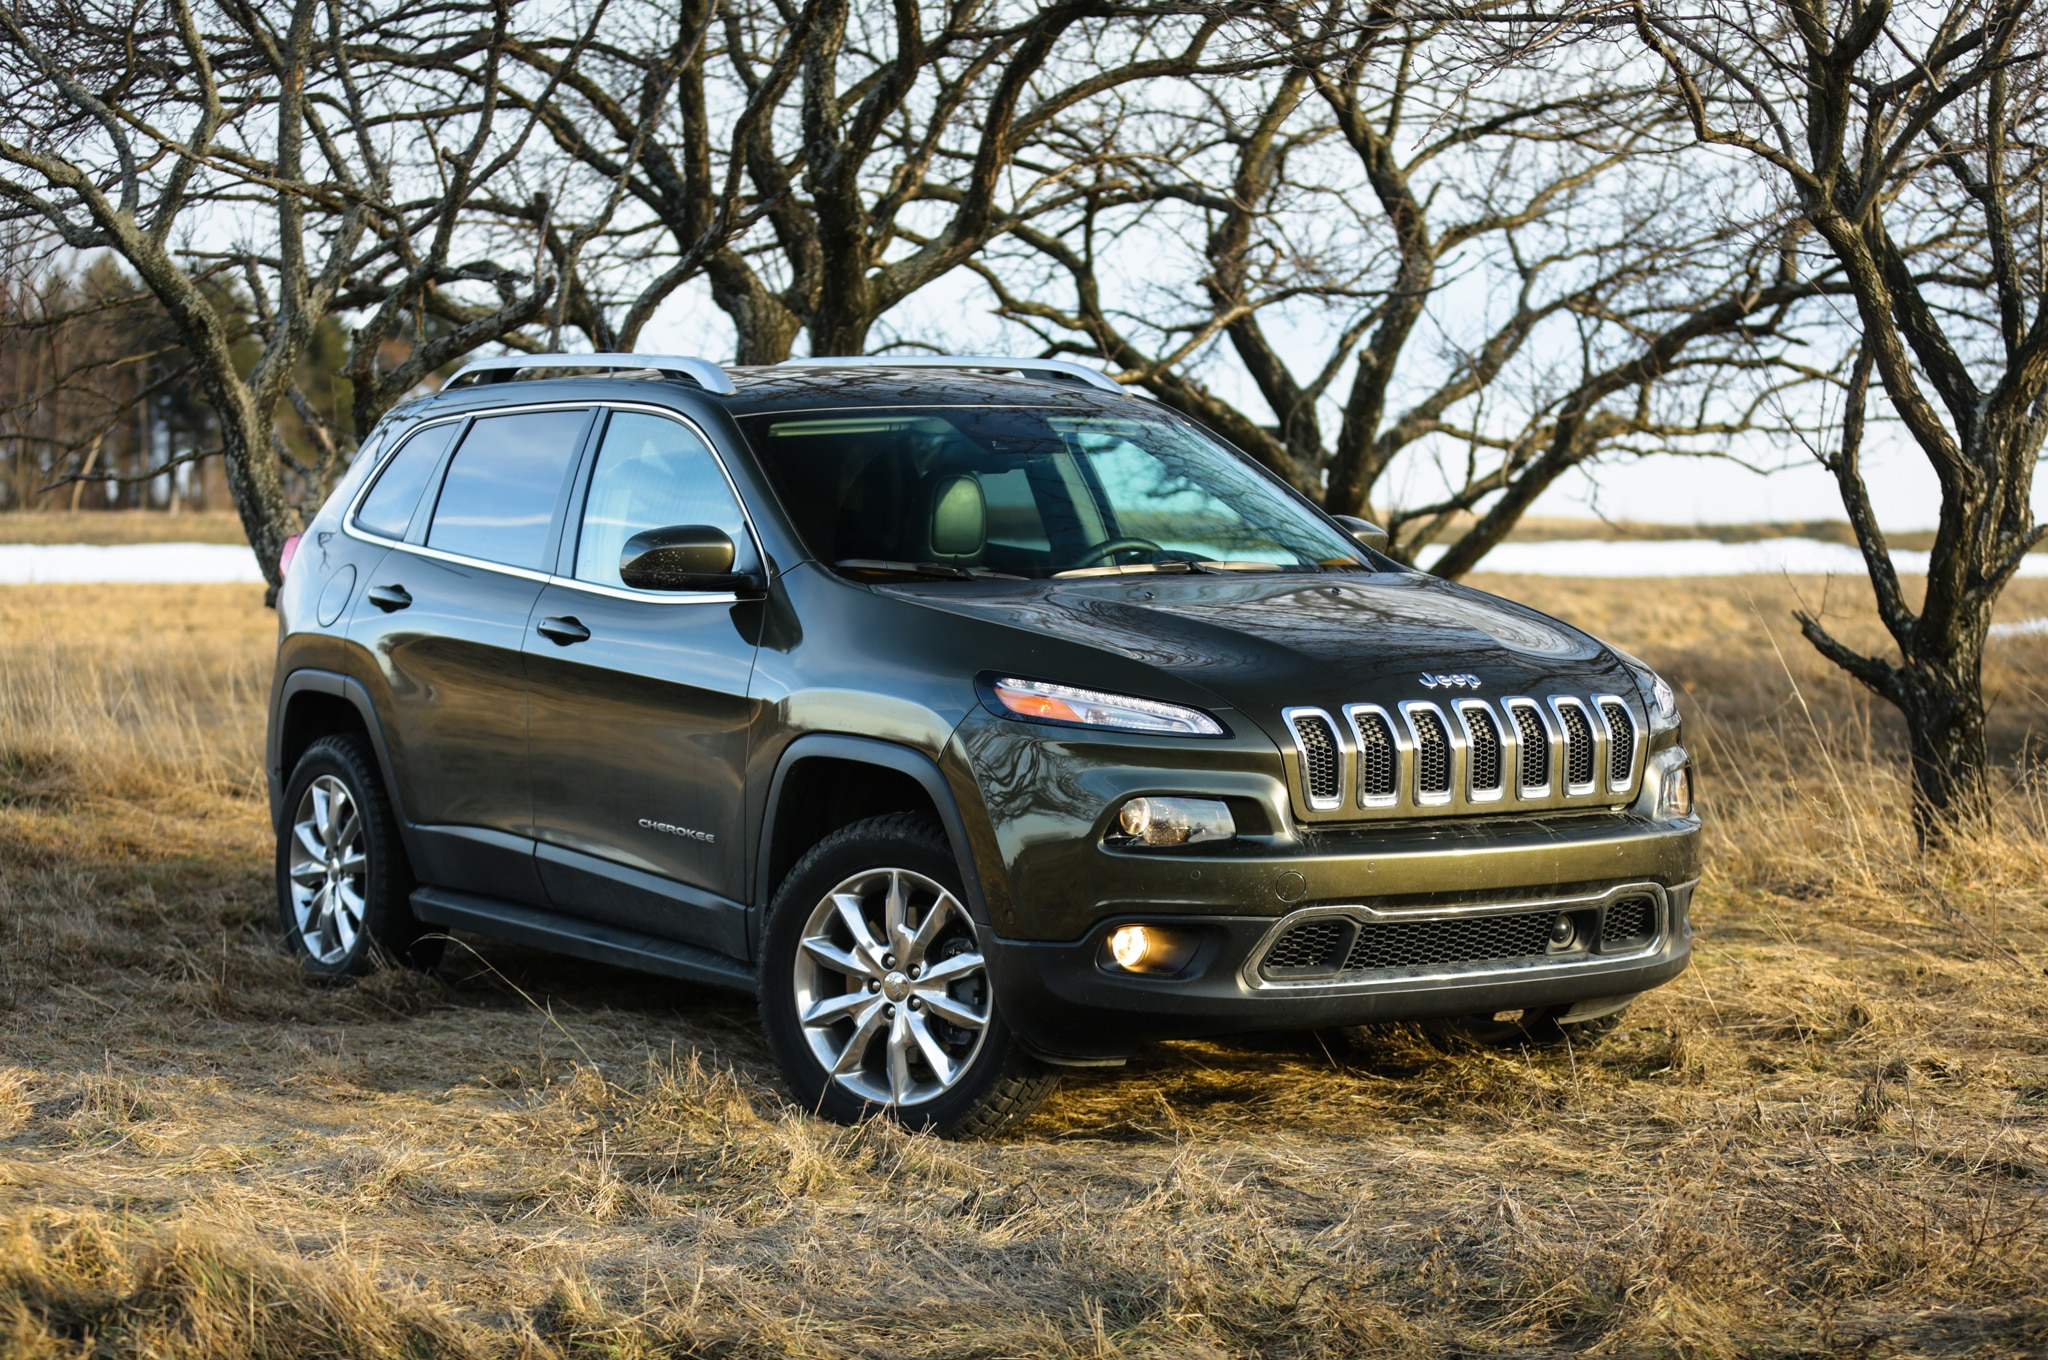 2014 jeep cherokee limited blazing a trail for our cherokee limited to follow. Black Bedroom Furniture Sets. Home Design Ideas